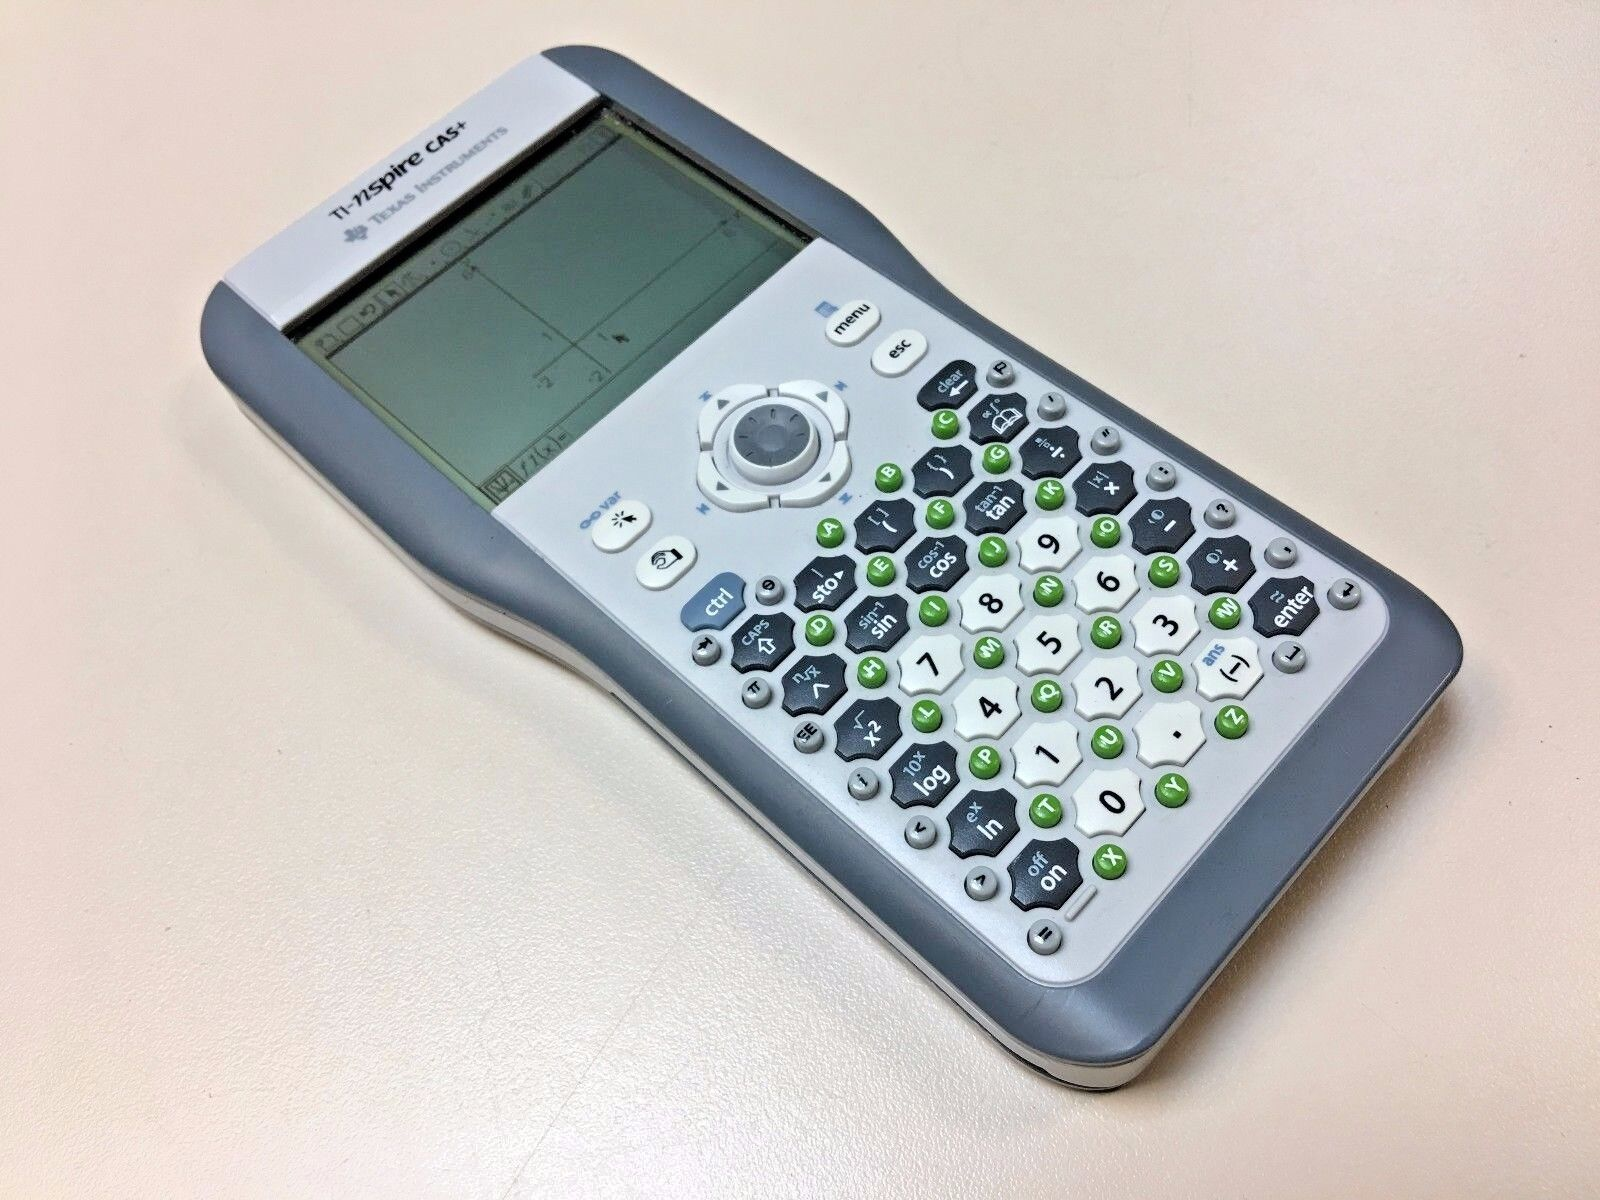 Texas Instruments Graphic Calculator TI NSPIRE CAS+ Prototype  RARE Testing unit